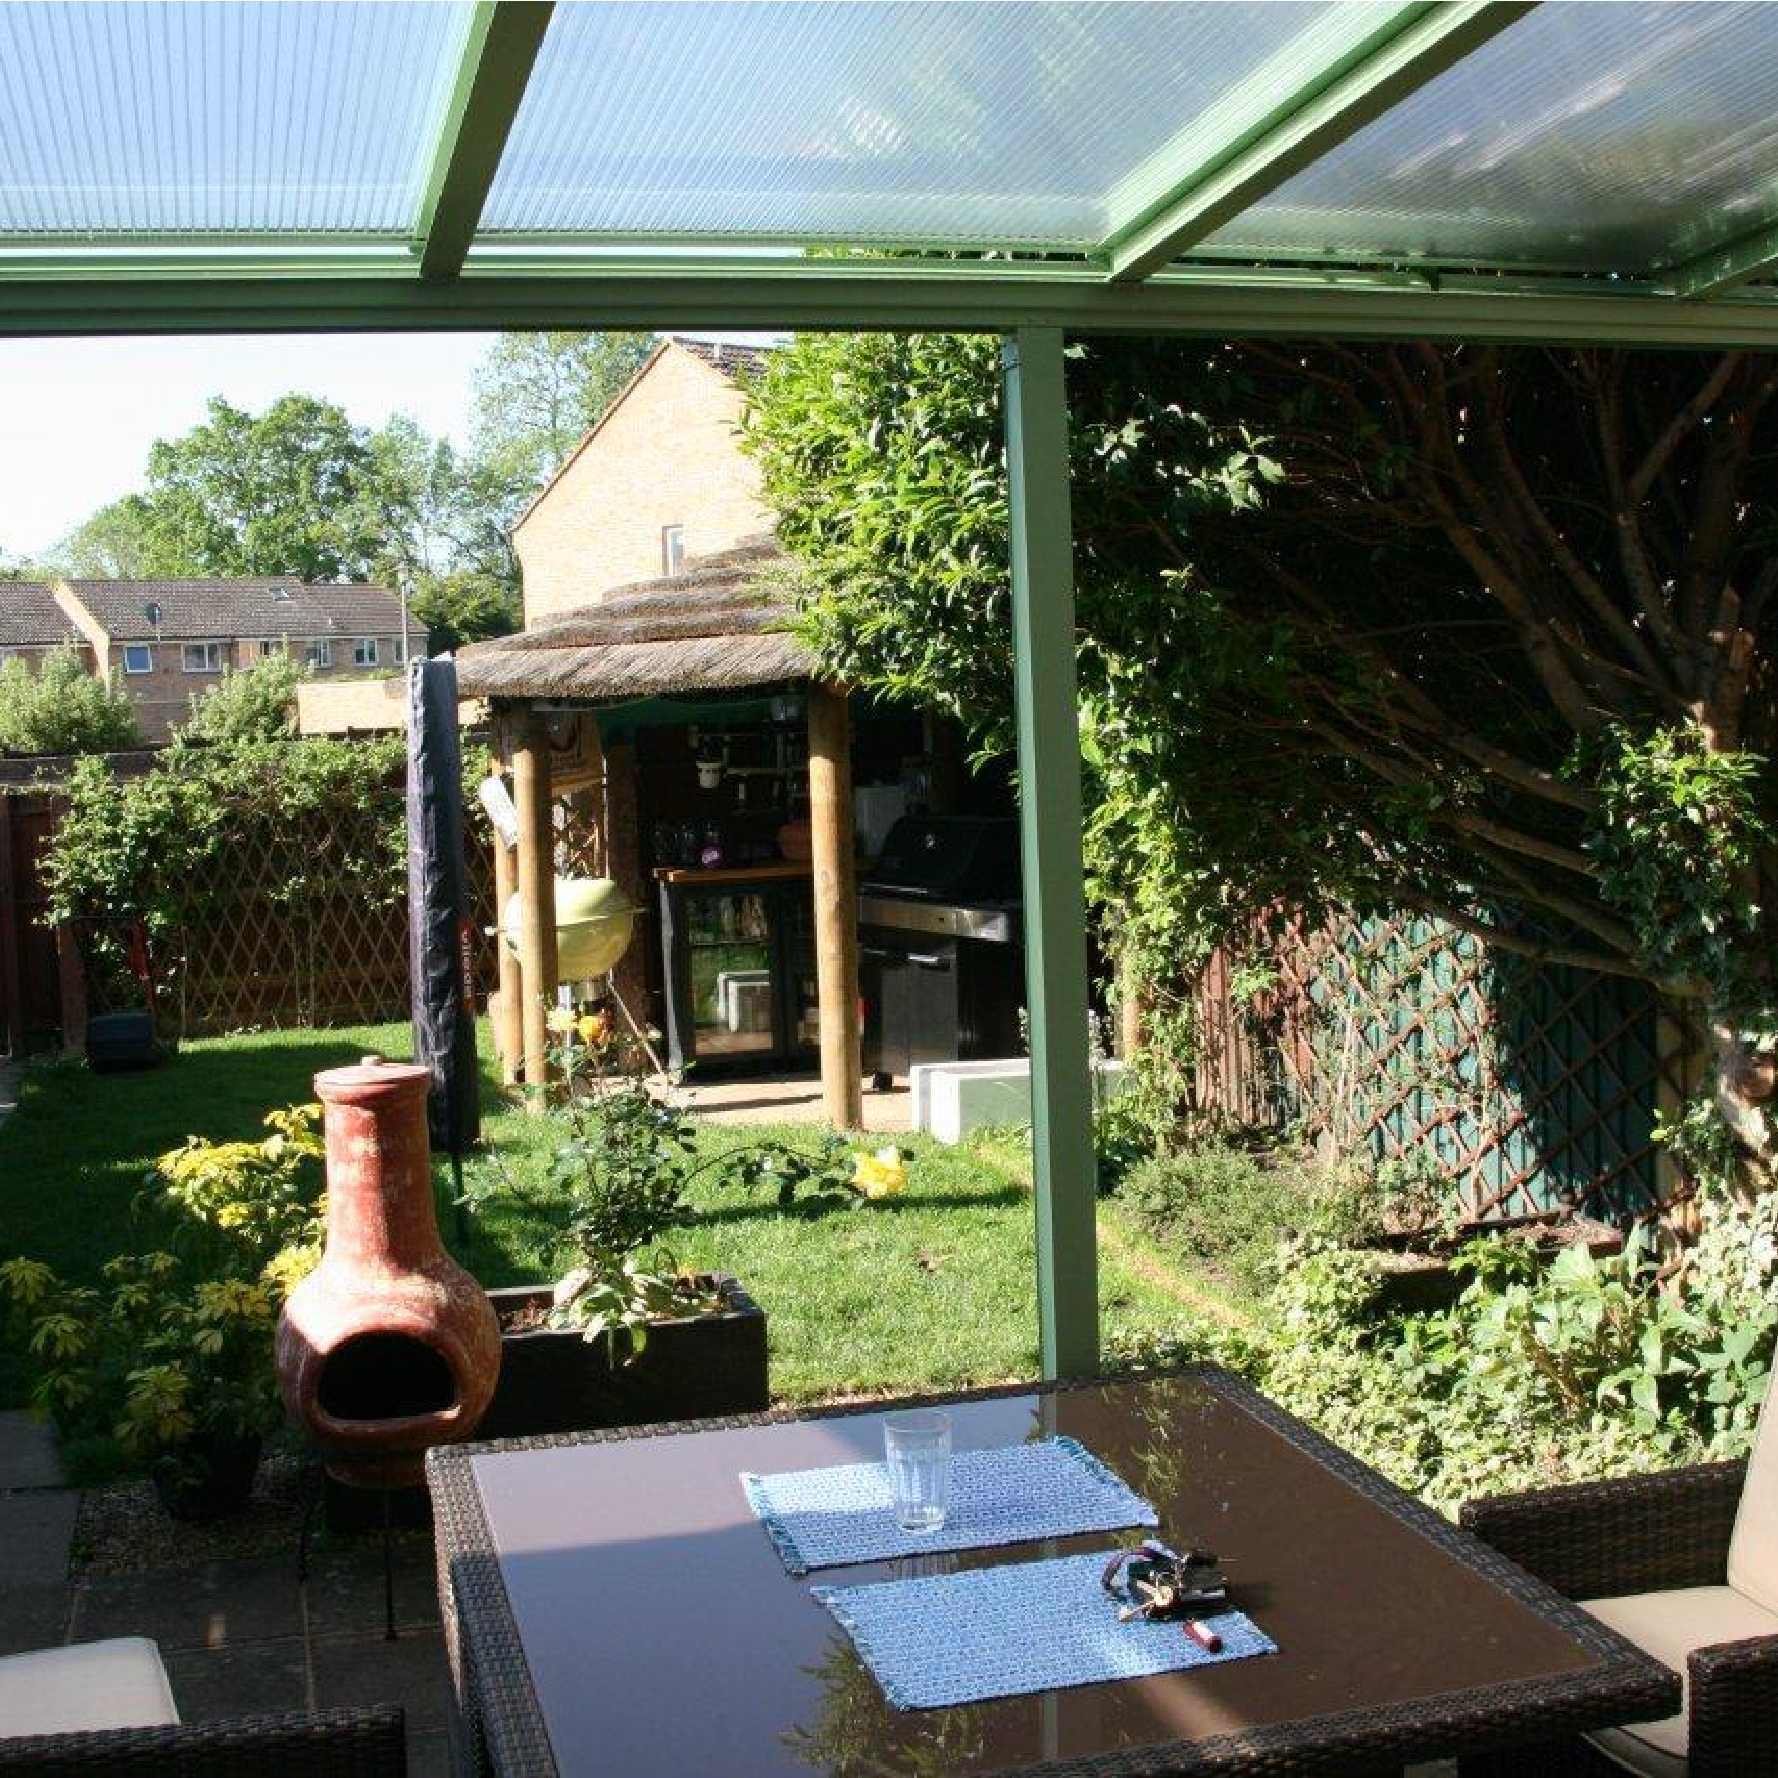 Affordable Omega Smart Lean-To Canopy with 16mm Polycarbonate Glazing - 3.1m (W) x 4.5m (P), (2) Supporting Posts